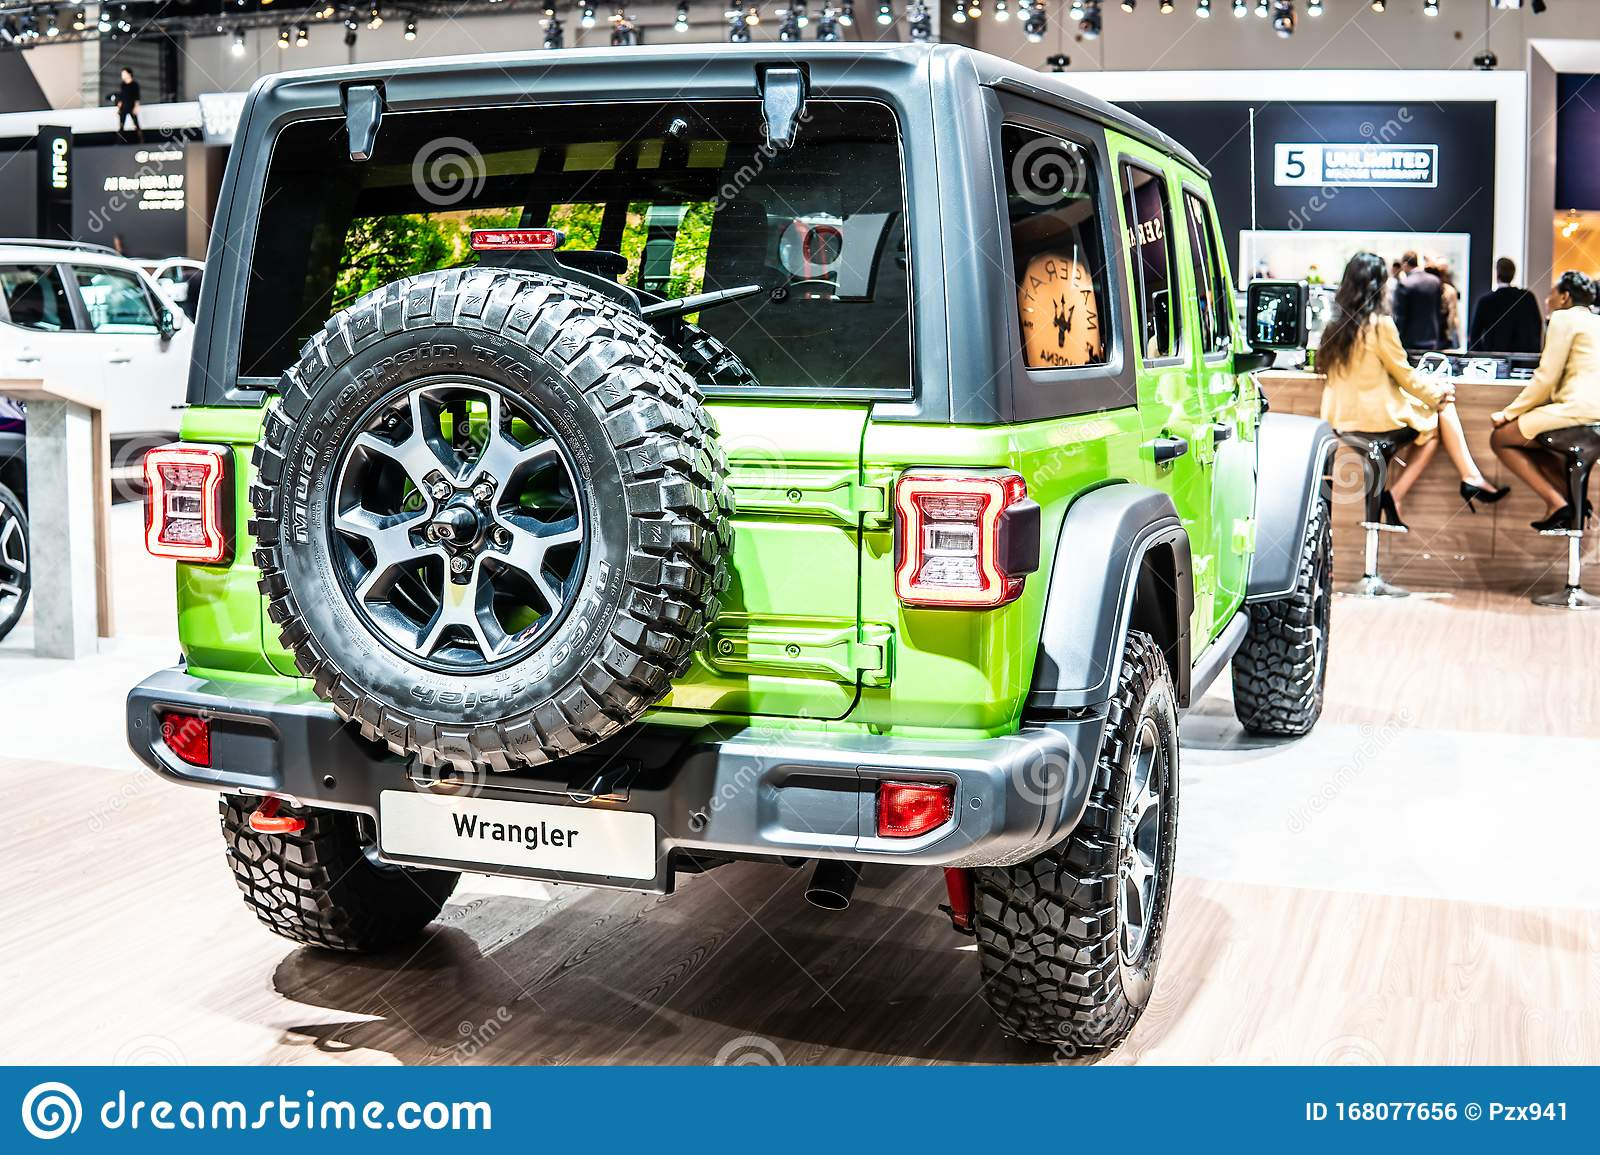 5 895 Green Jeep Photos Free Royalty Free Stock Photos From Dreamstime